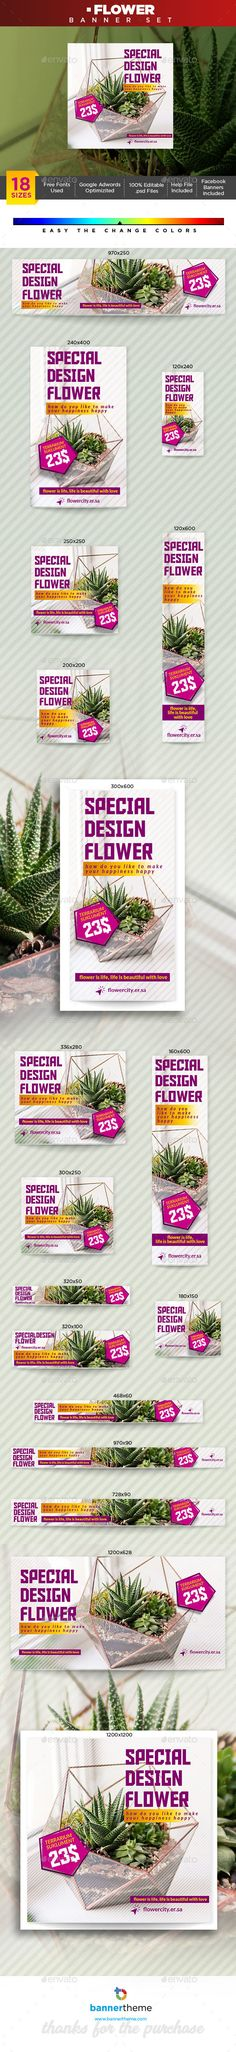 Wonderful banner designs for 18 different sizes ready for all your products, services, campaigns and promotions. search tag: #Flower #Banner - Banners & #Ads #Web #Elements